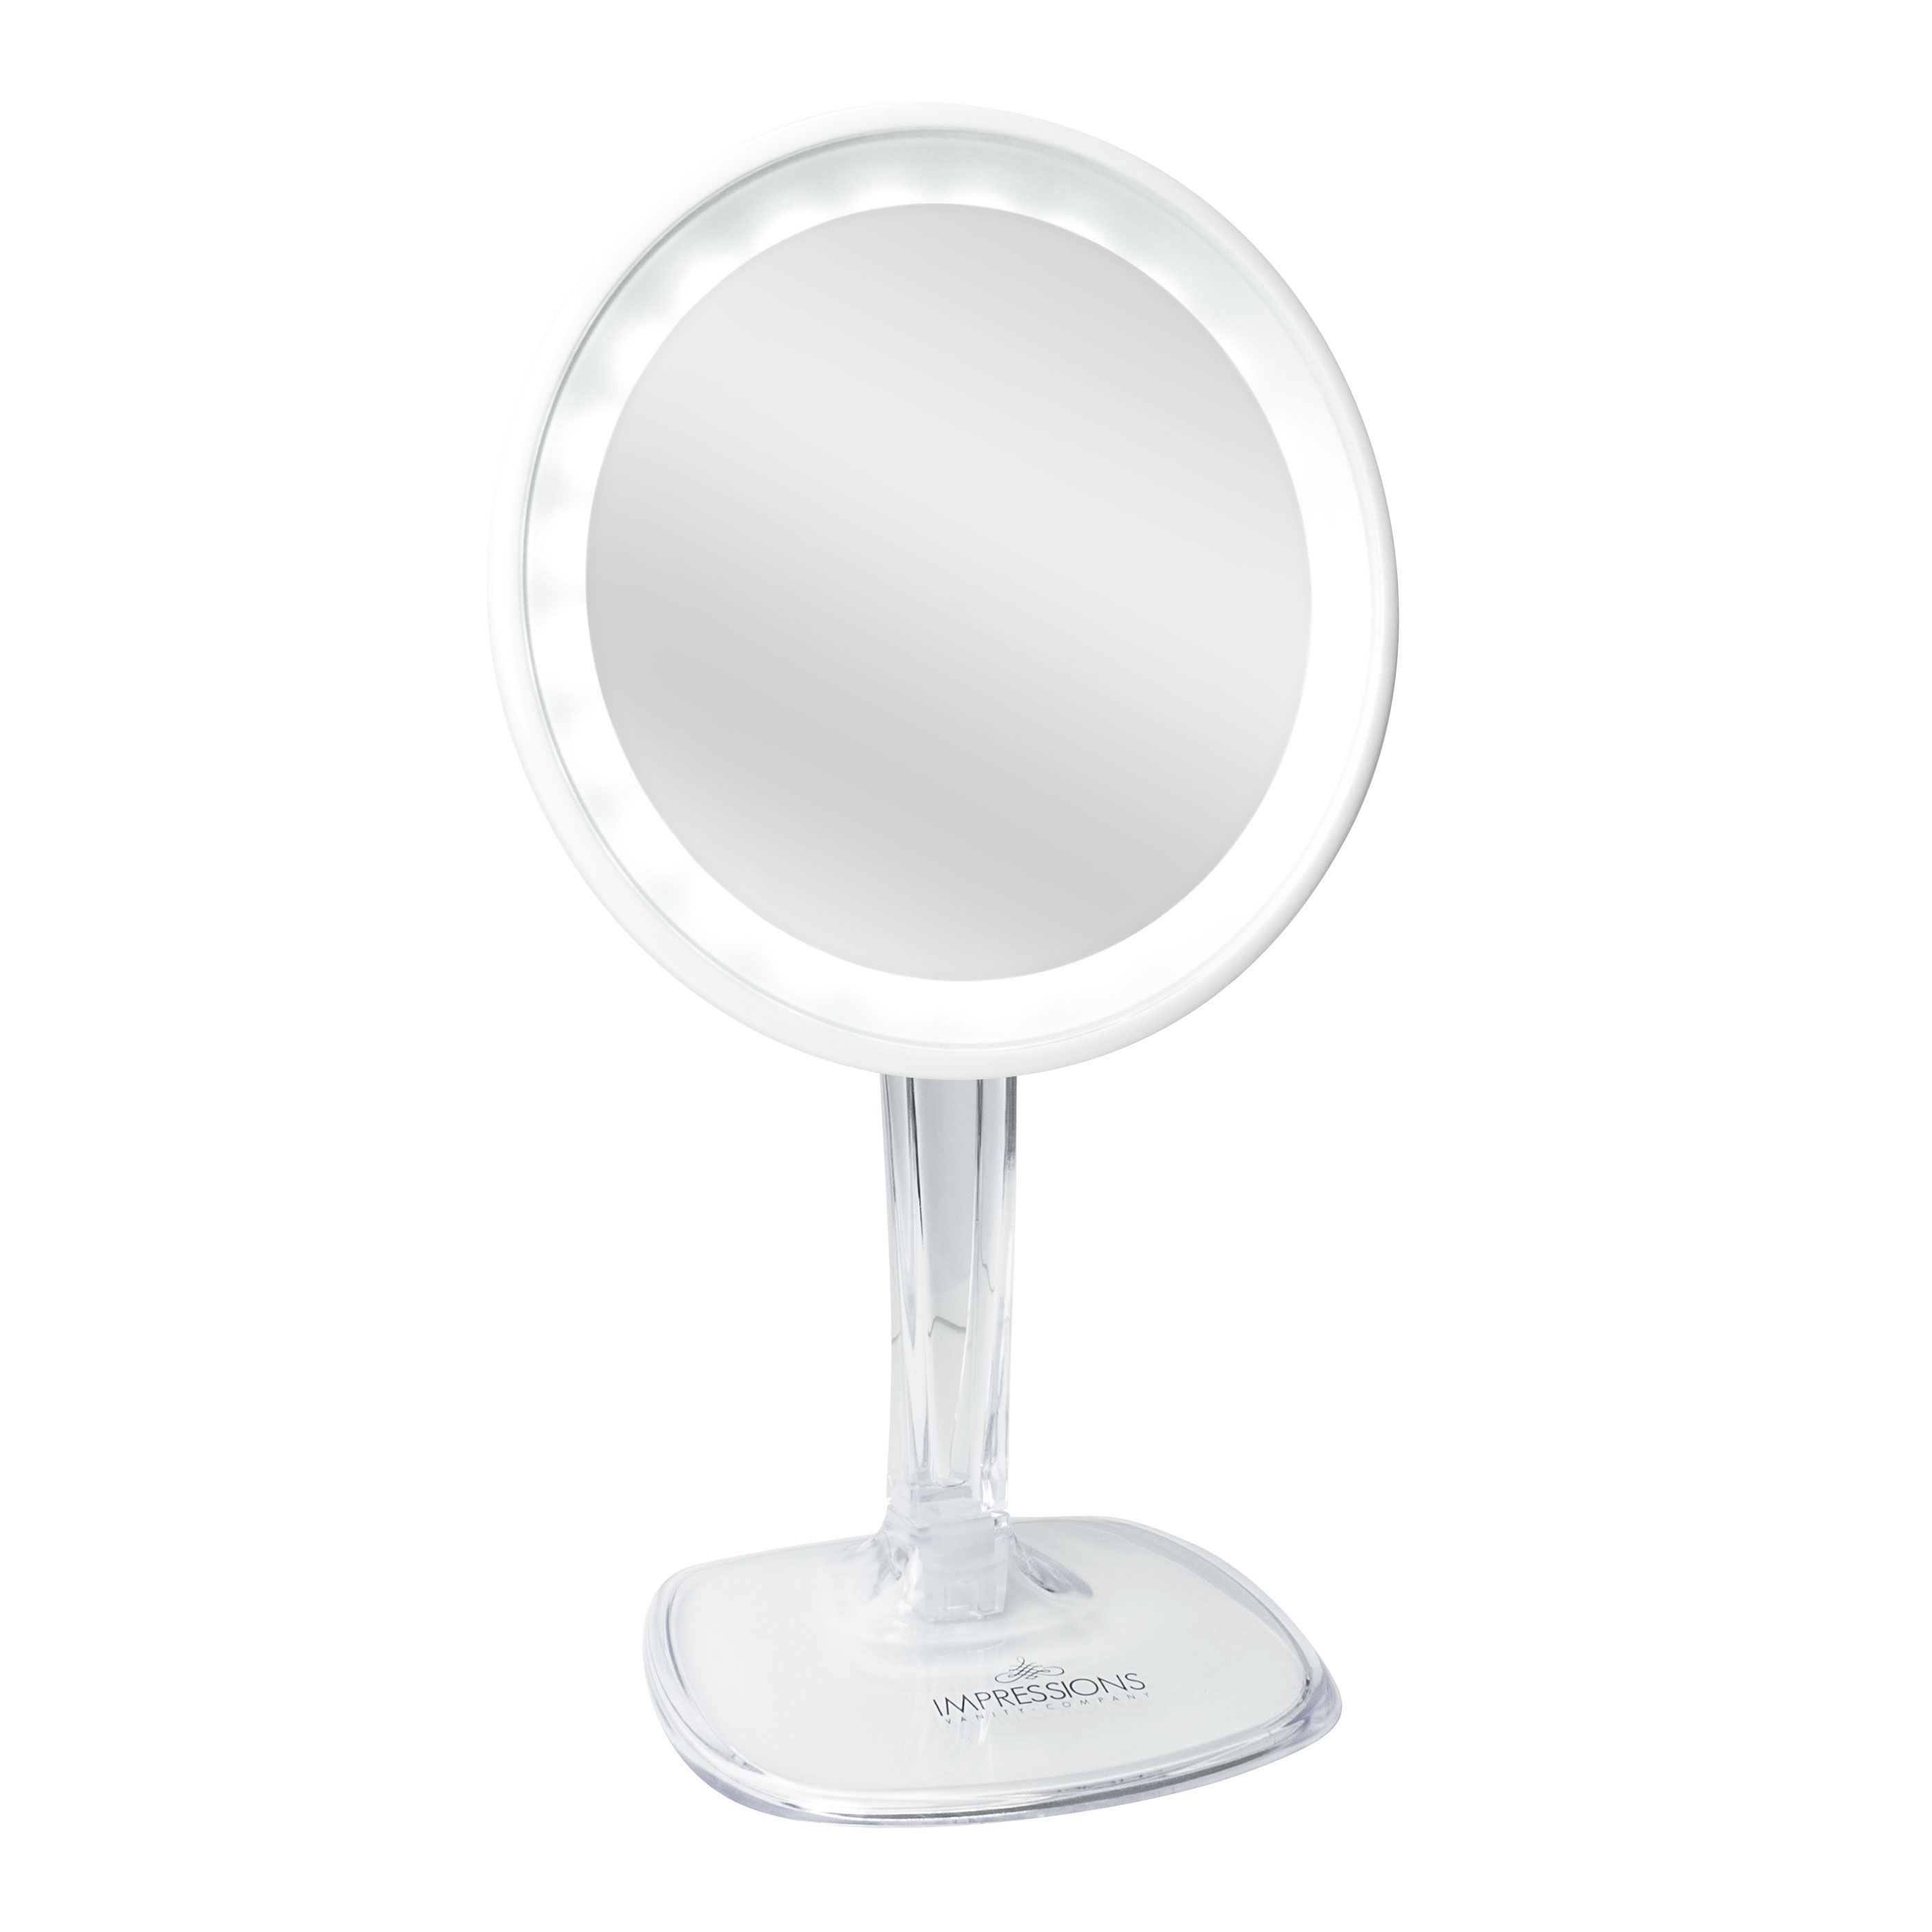 Makeup Mirrors Makeup Mirror With Lights Ring Light Makeup Mirror Mirror